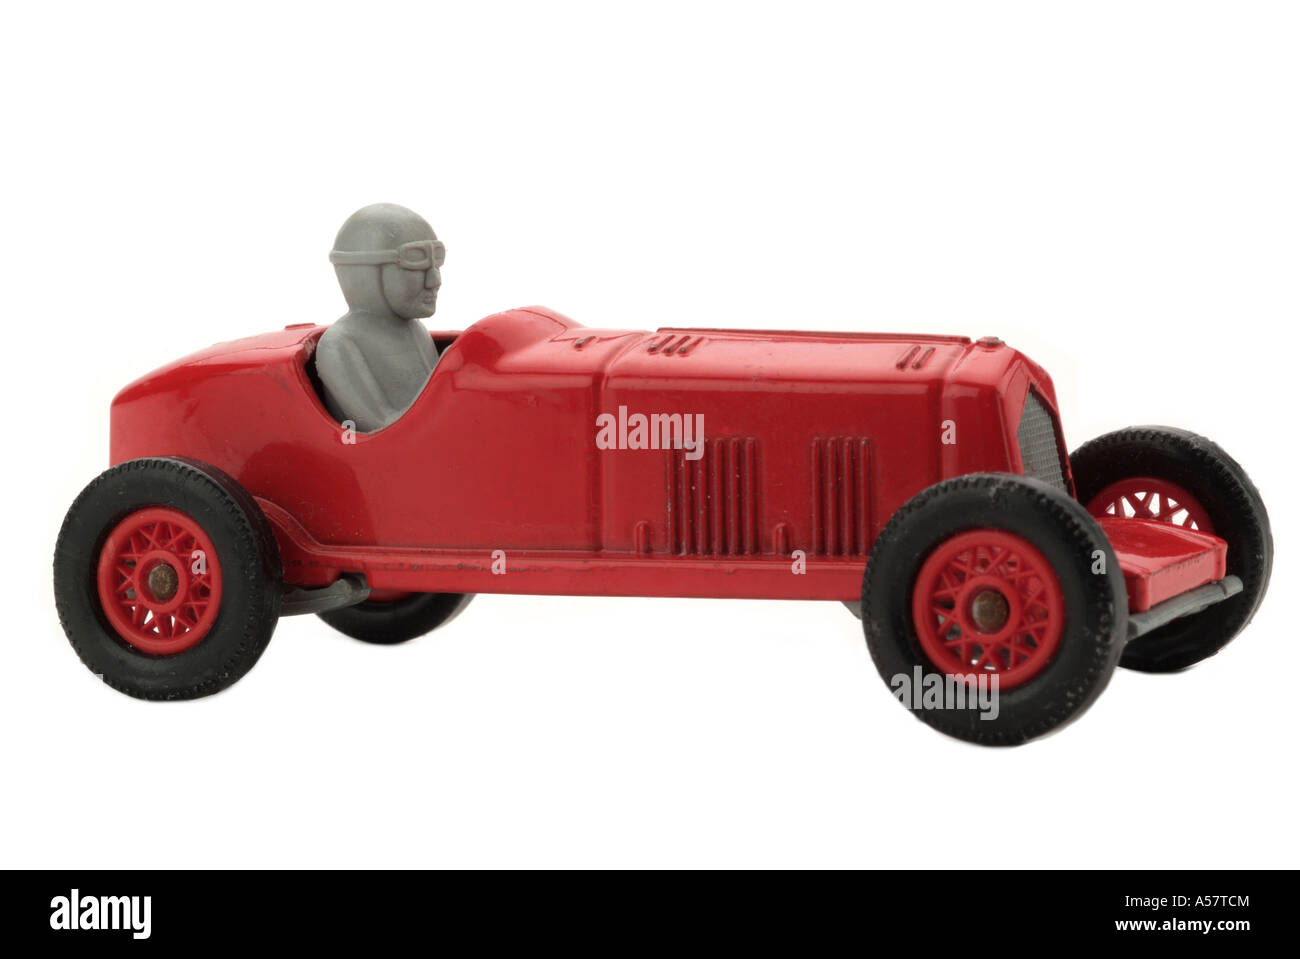 Toy Race Trucks : Red toy racing car old fashioned vehicle speed danger